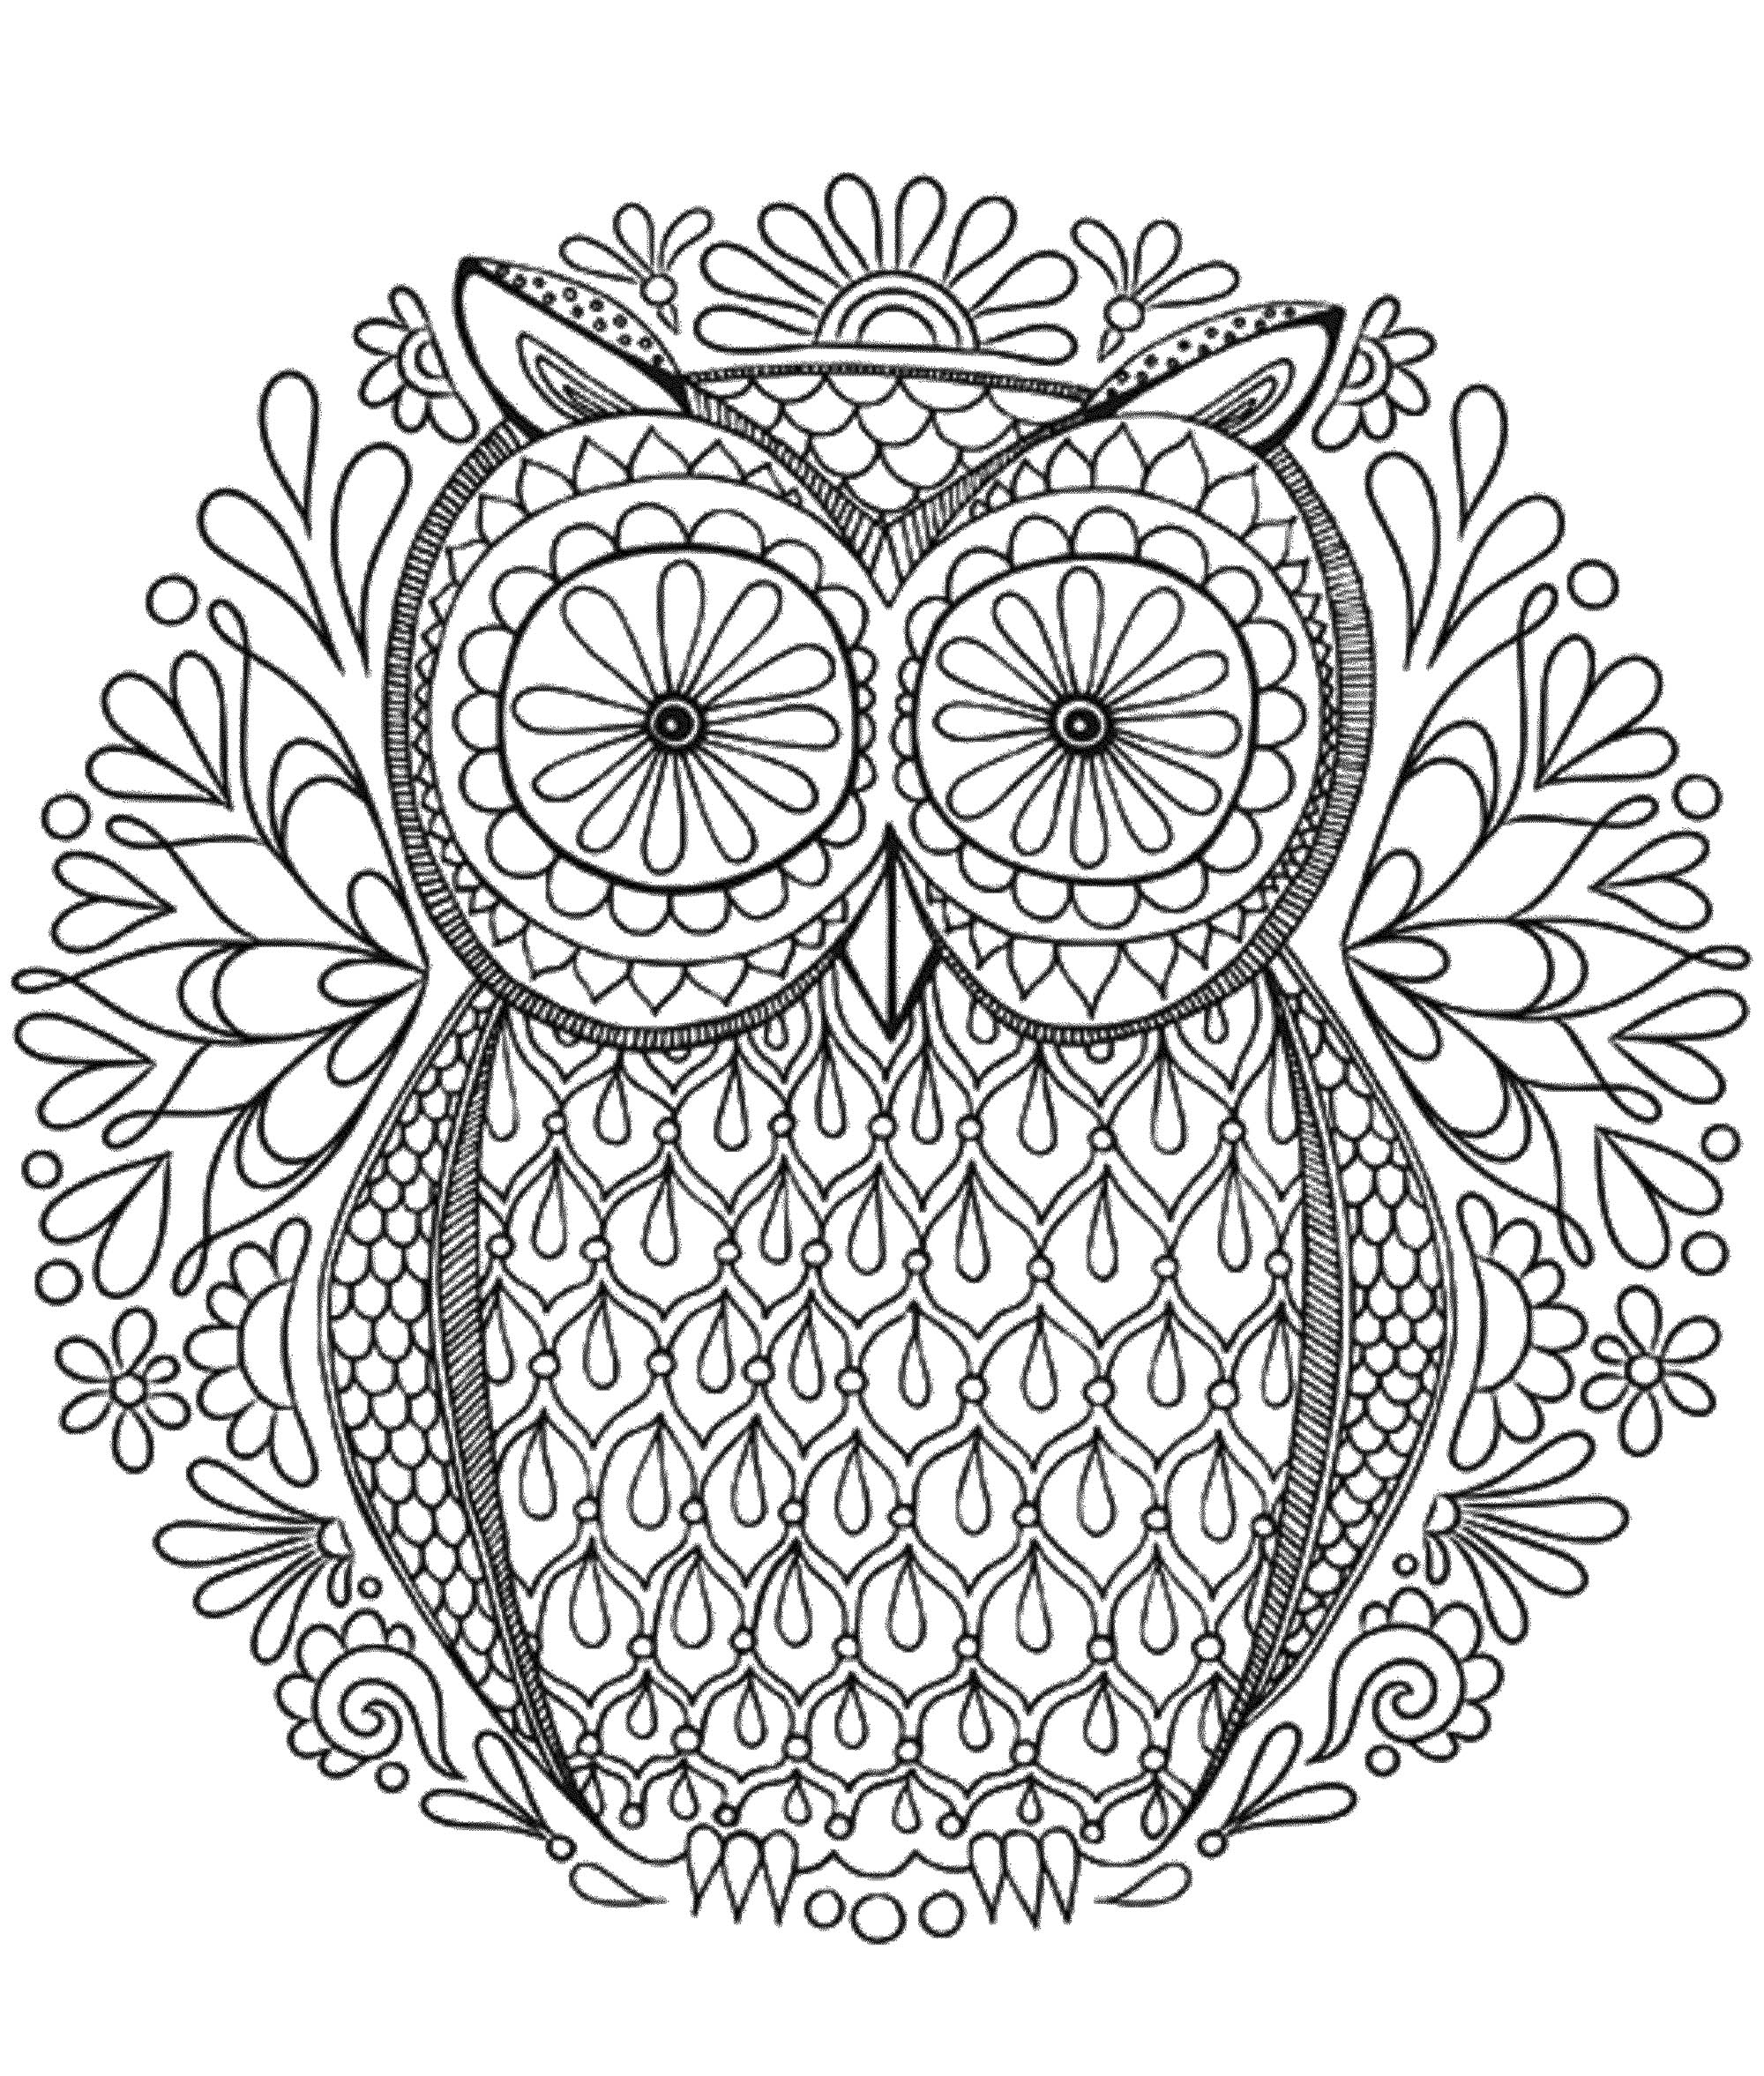 Mandala to download in pdf 6 - Mandalas Adult Coloring Pages